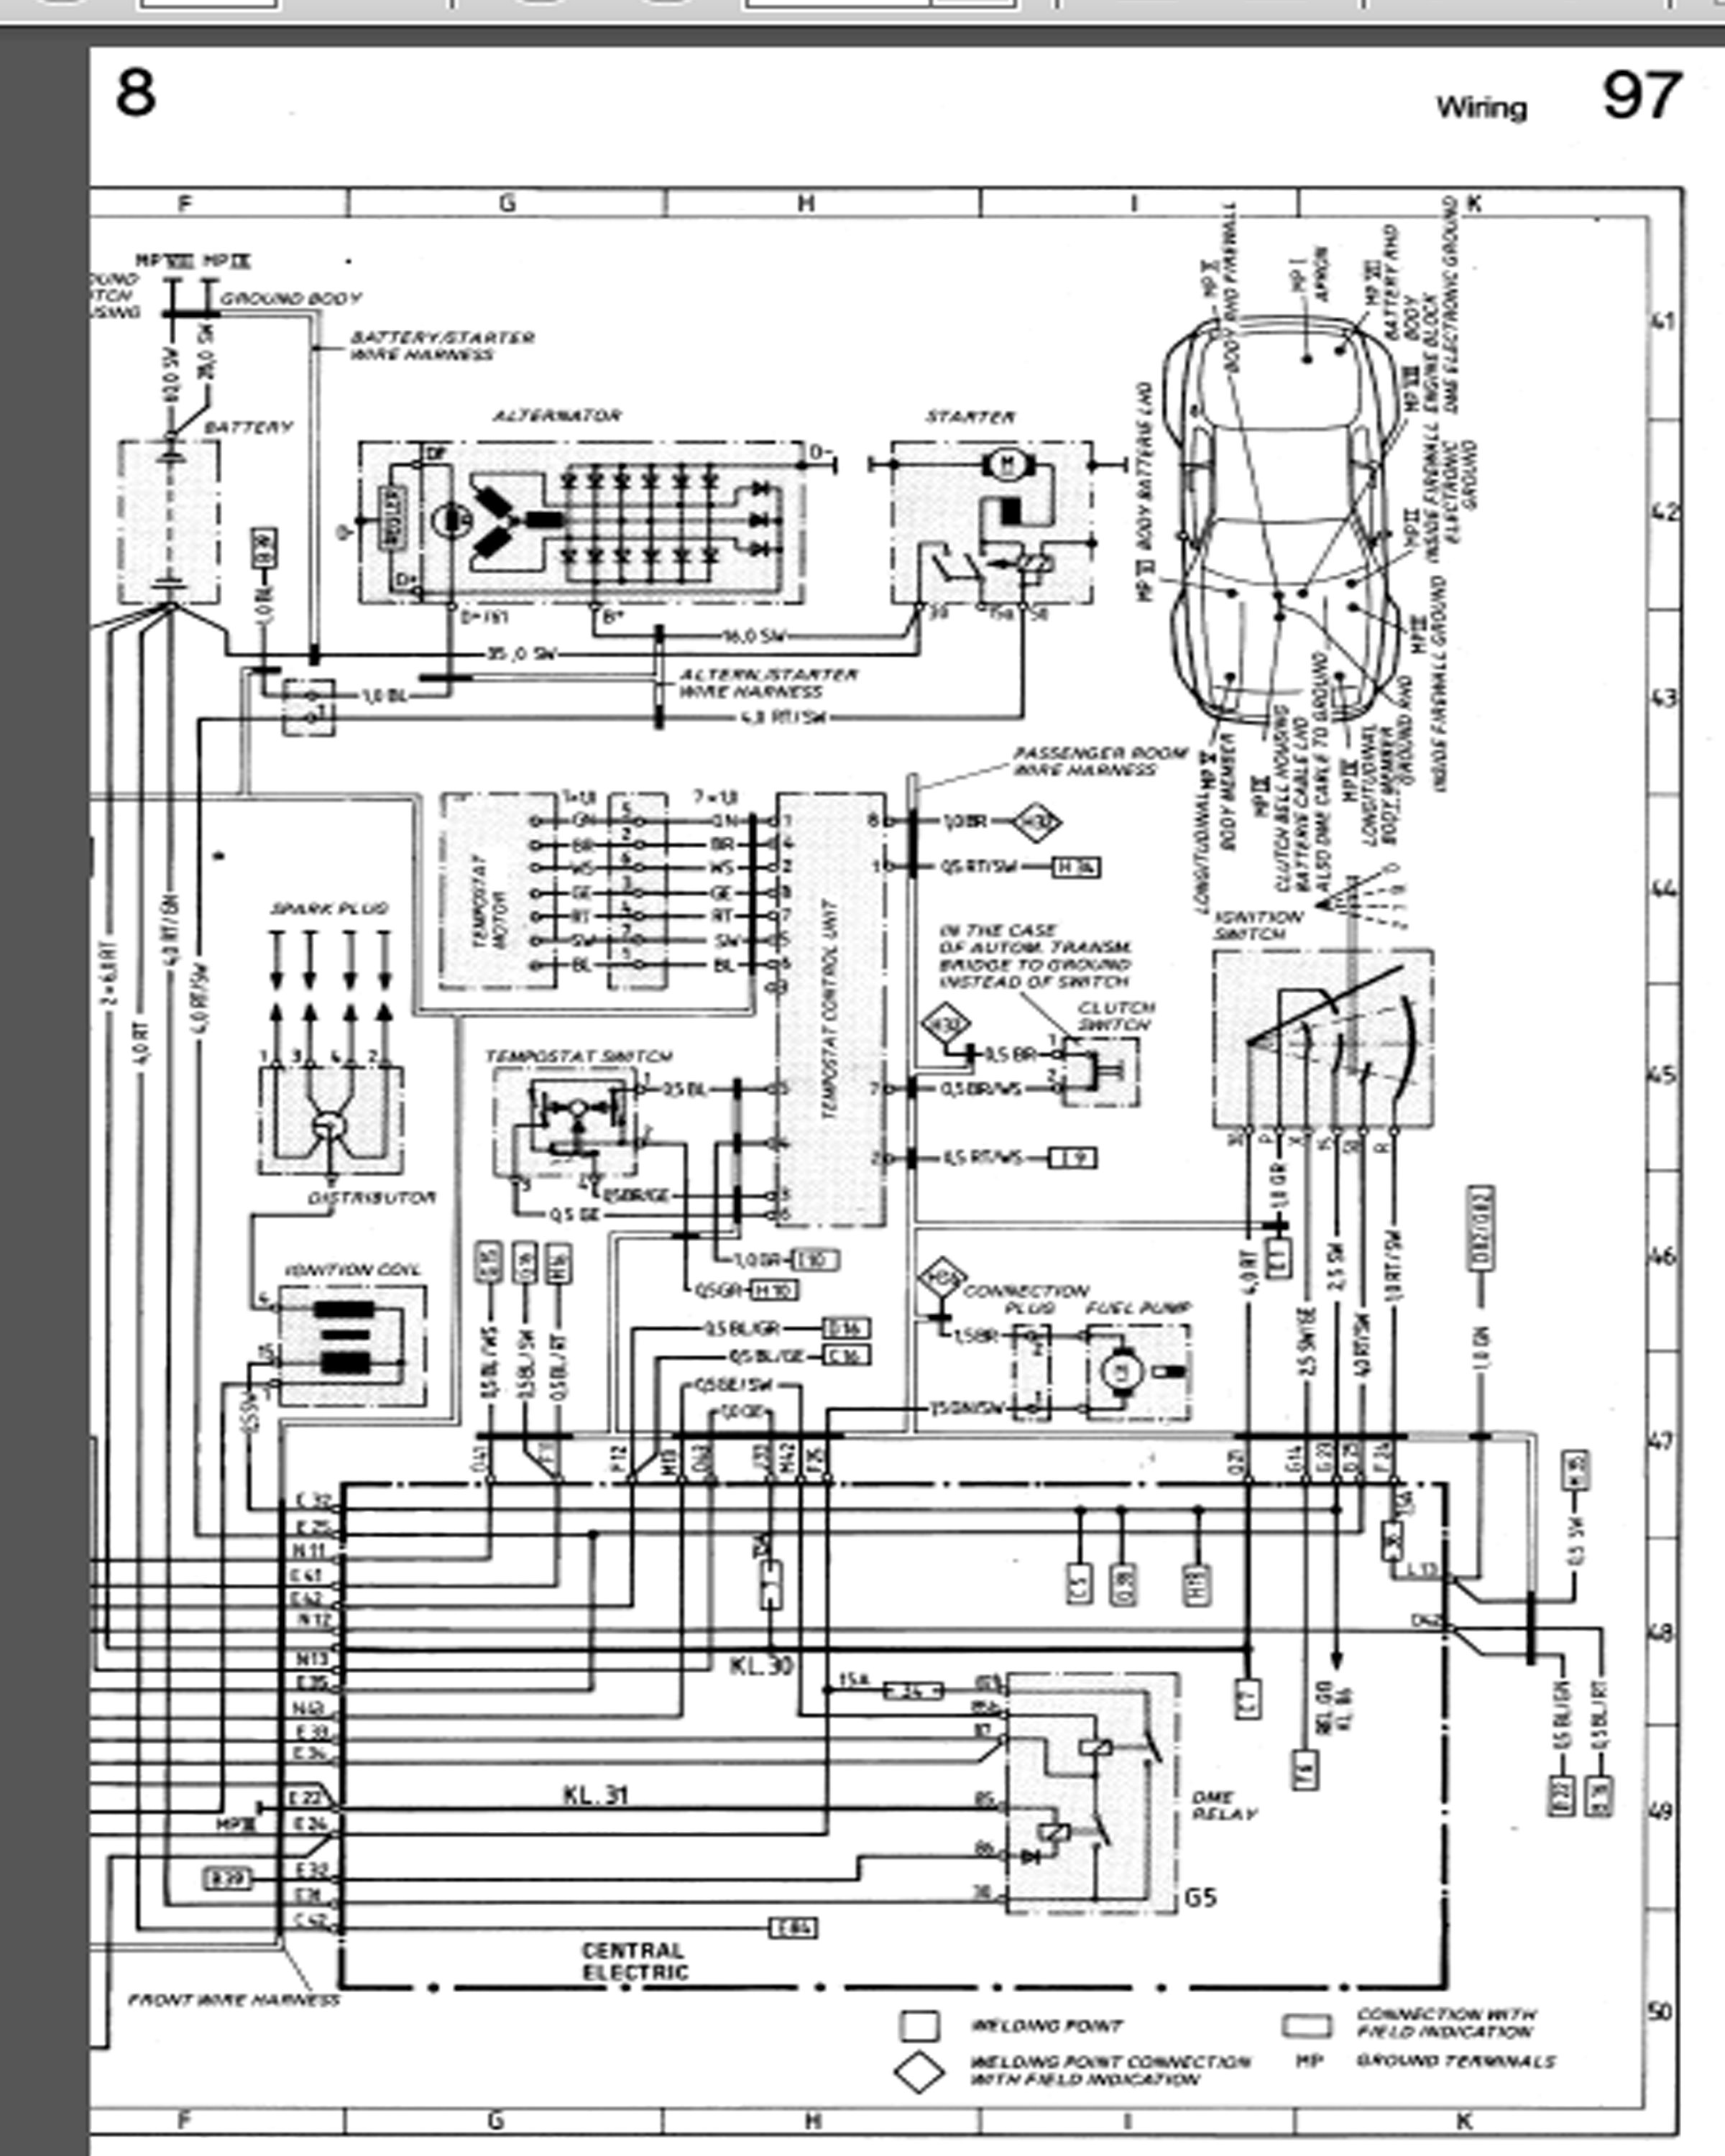 2012 01 18_174041_96_944_turbo_wiring_page_2 air conditioner porsche 944 electrics porsche archives porsche 944 wiring diagram at virtualis.co